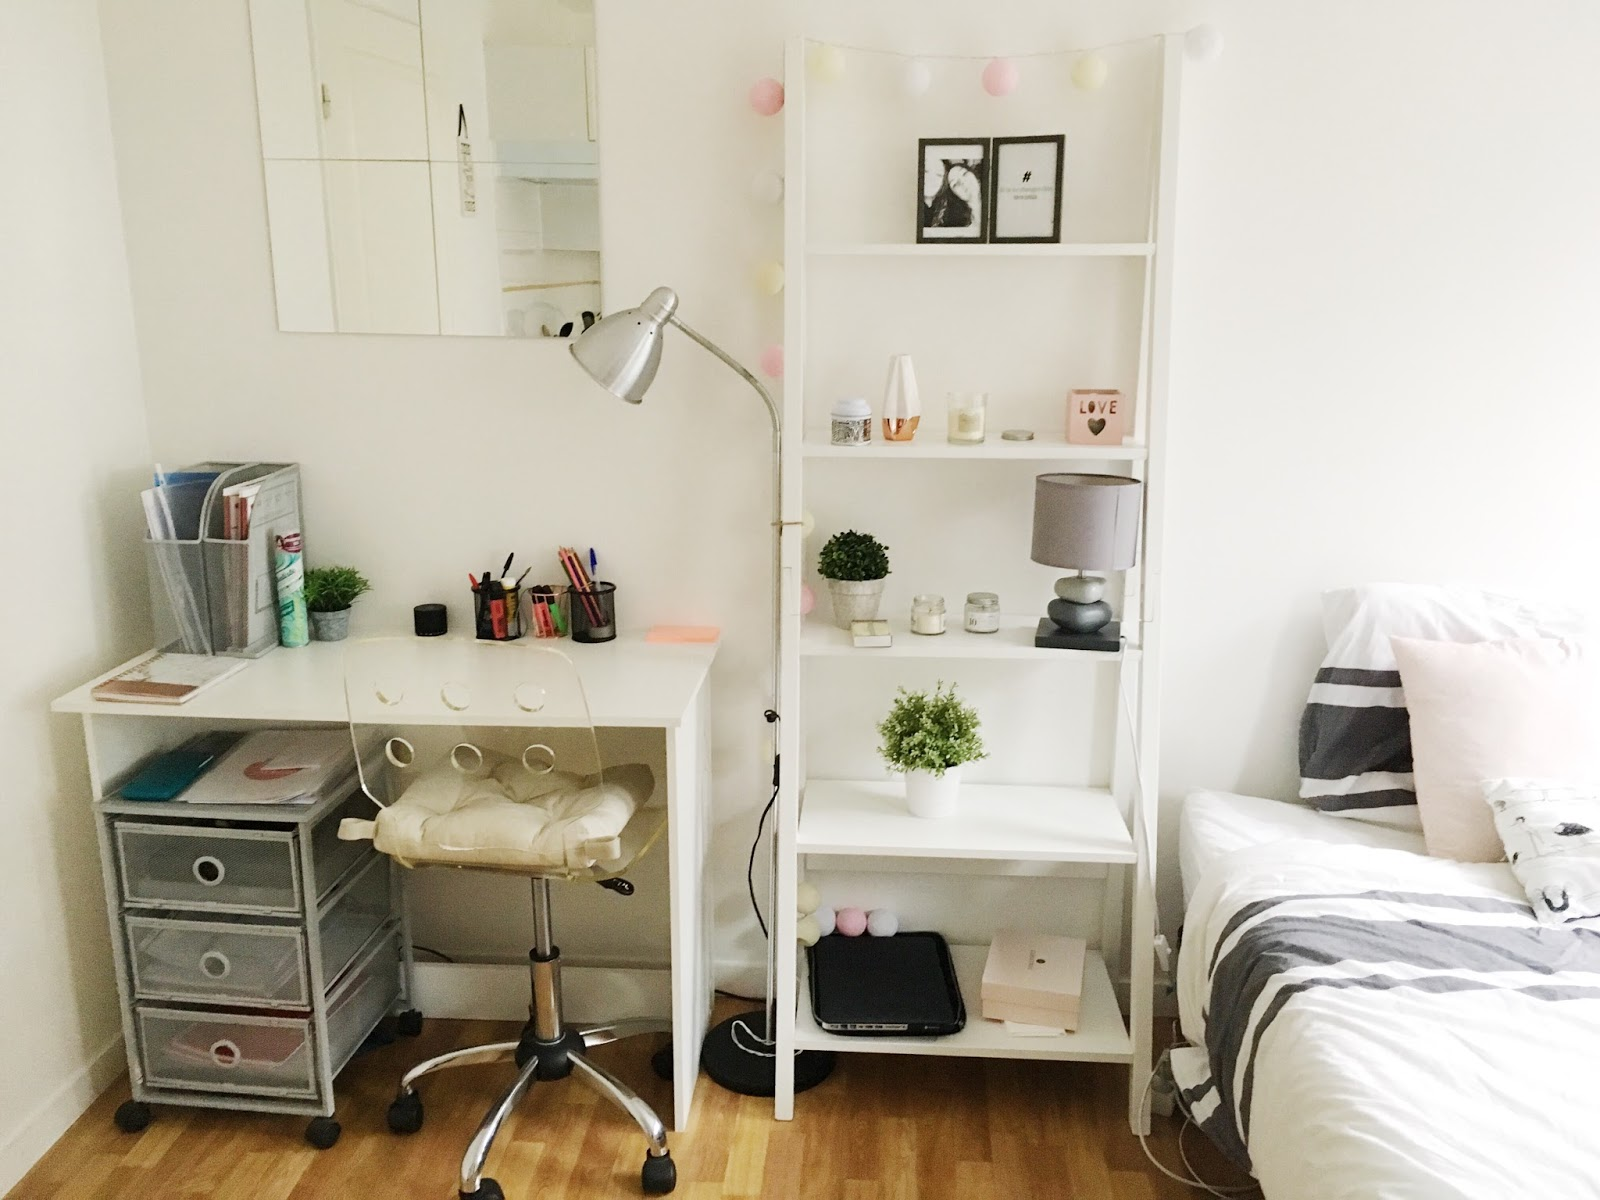 Am nager un studio appartement tour lisa dct le blog for Appartement design tours